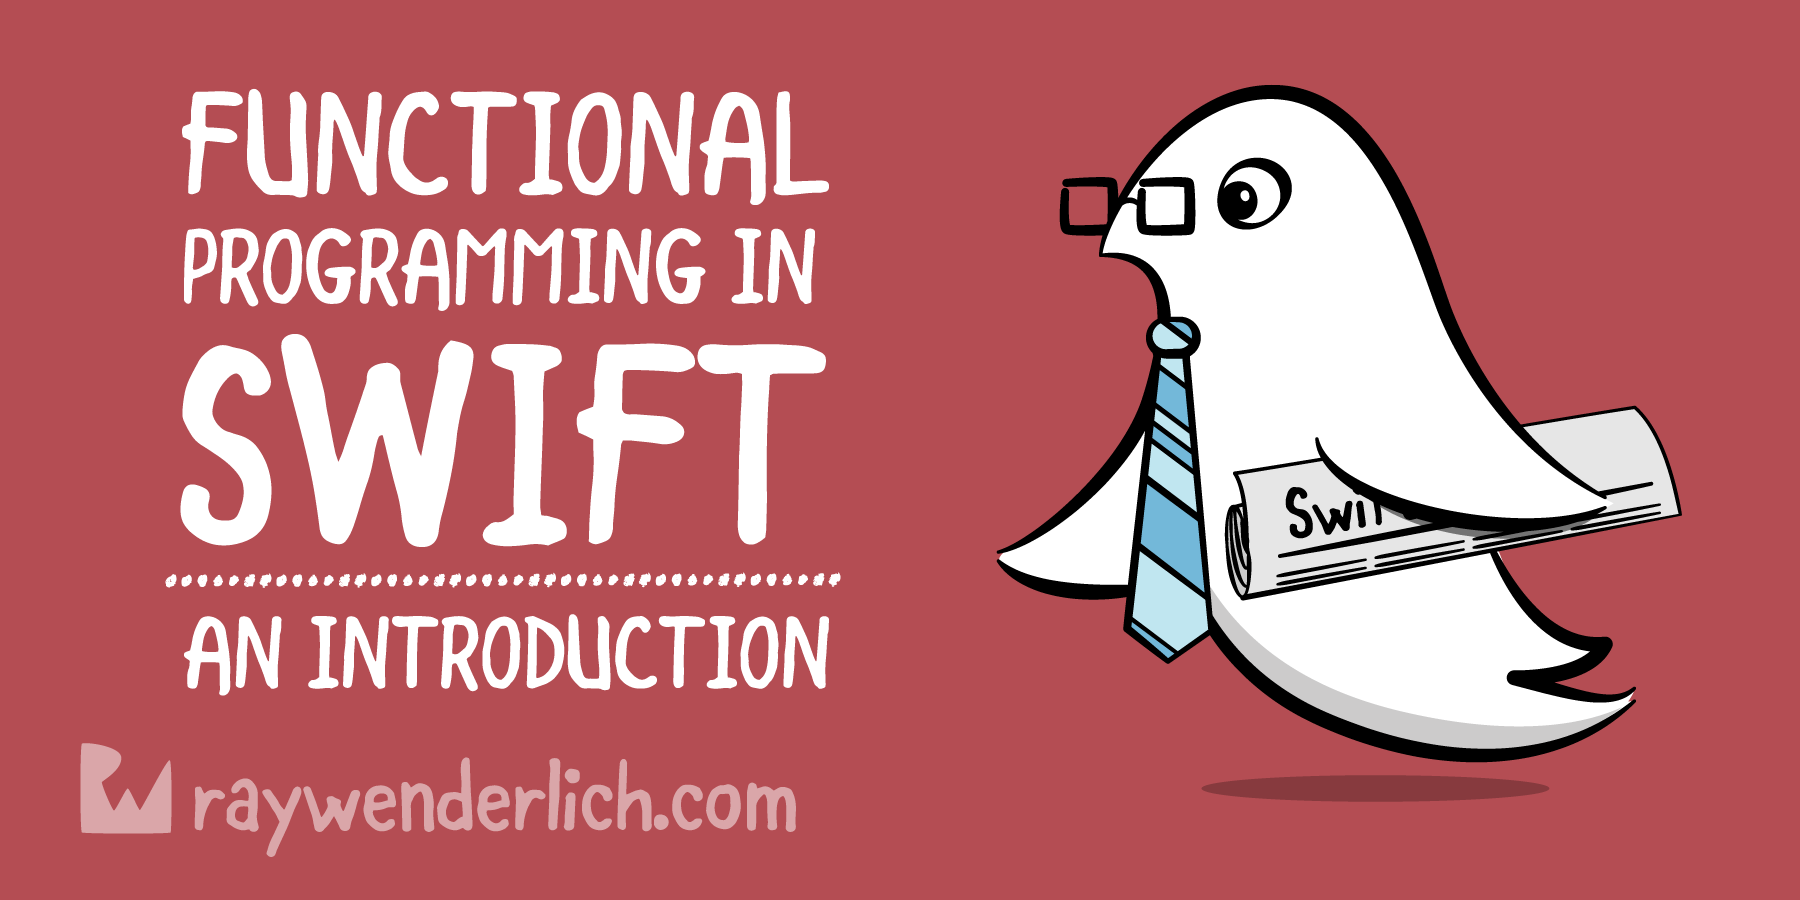 An Introduction to Functional Programming in Swift